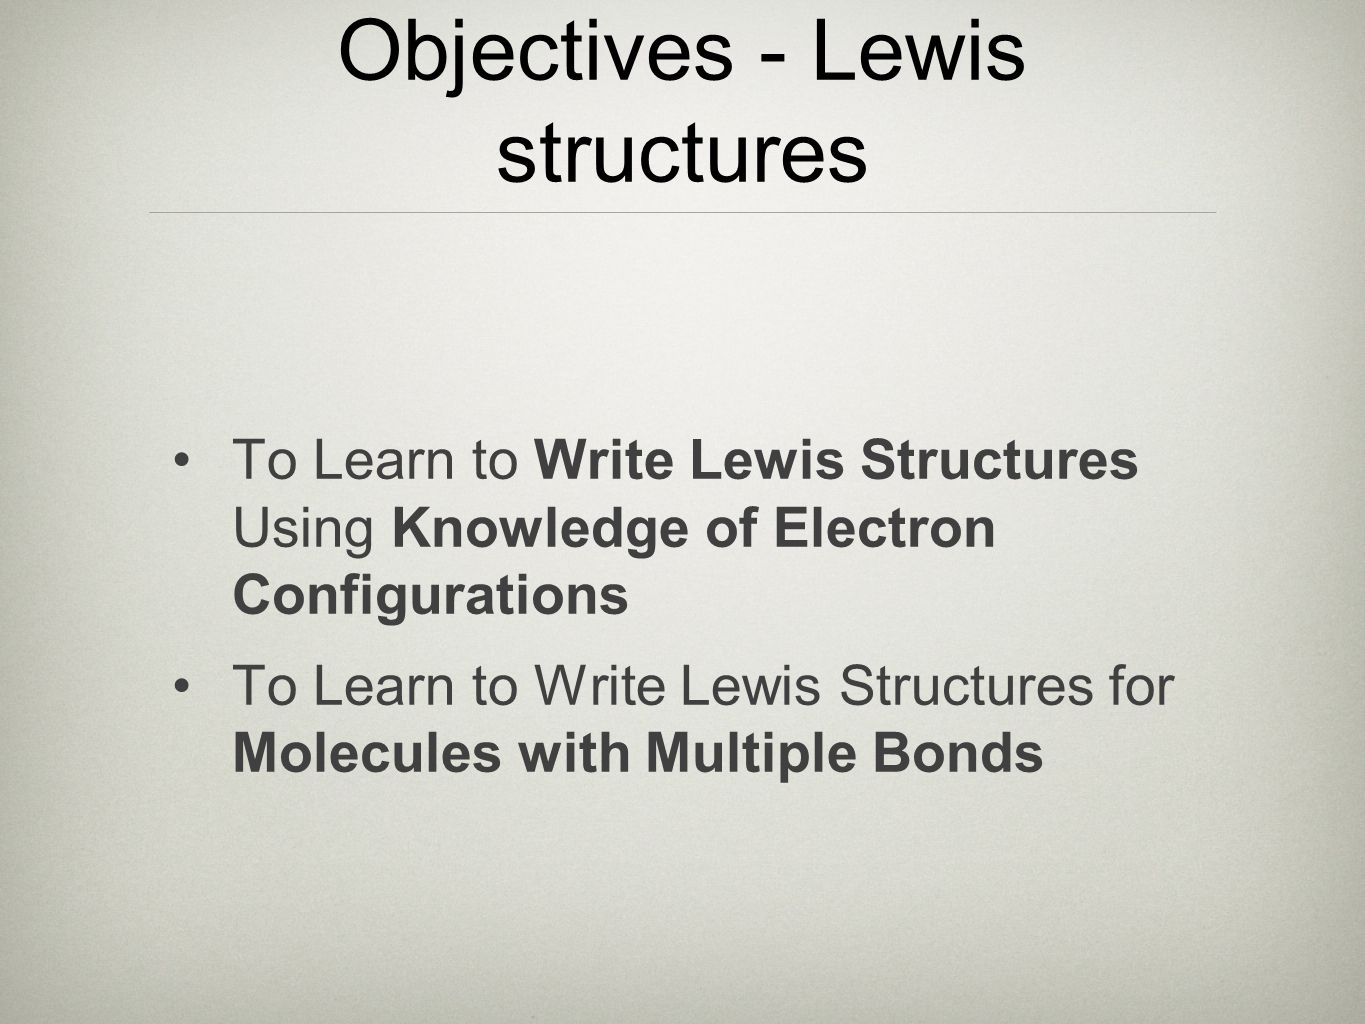 Objectives - Lewis structures To Learn to Write Lewis Structures Using Knowledge of Electron Configurations To Learn to Write Lewis Structures for Molecules with Multiple Bonds